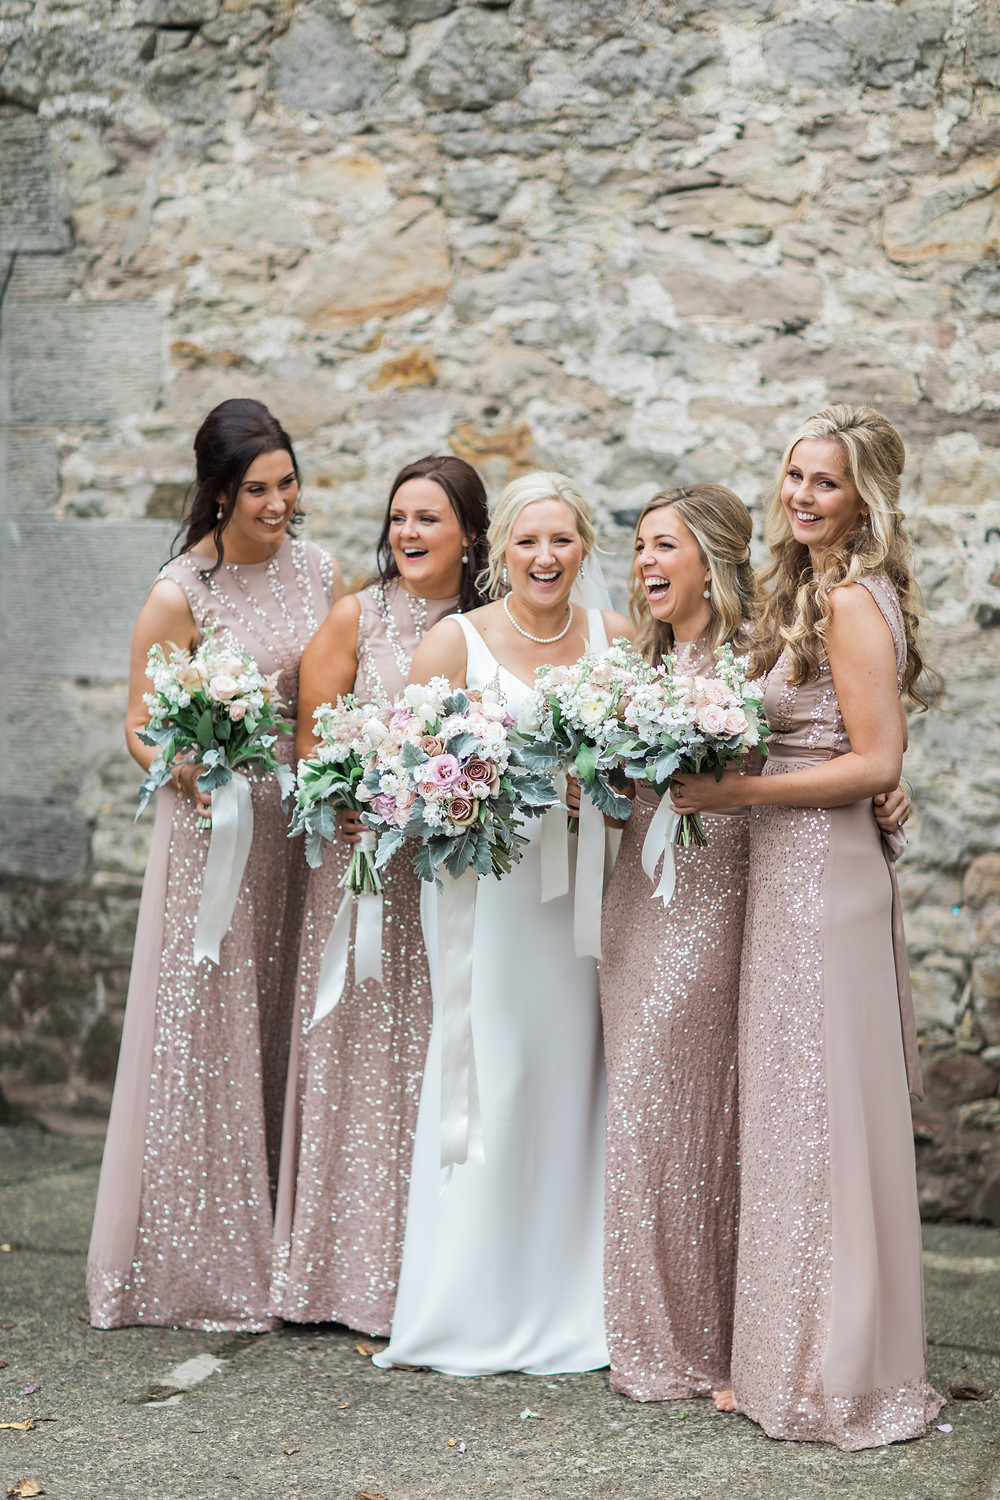 Hand Tied blush, nude and white bridal bouquet wedding flowers at Doxford Barns in Northumberland. Image by Emily Hannah Photography